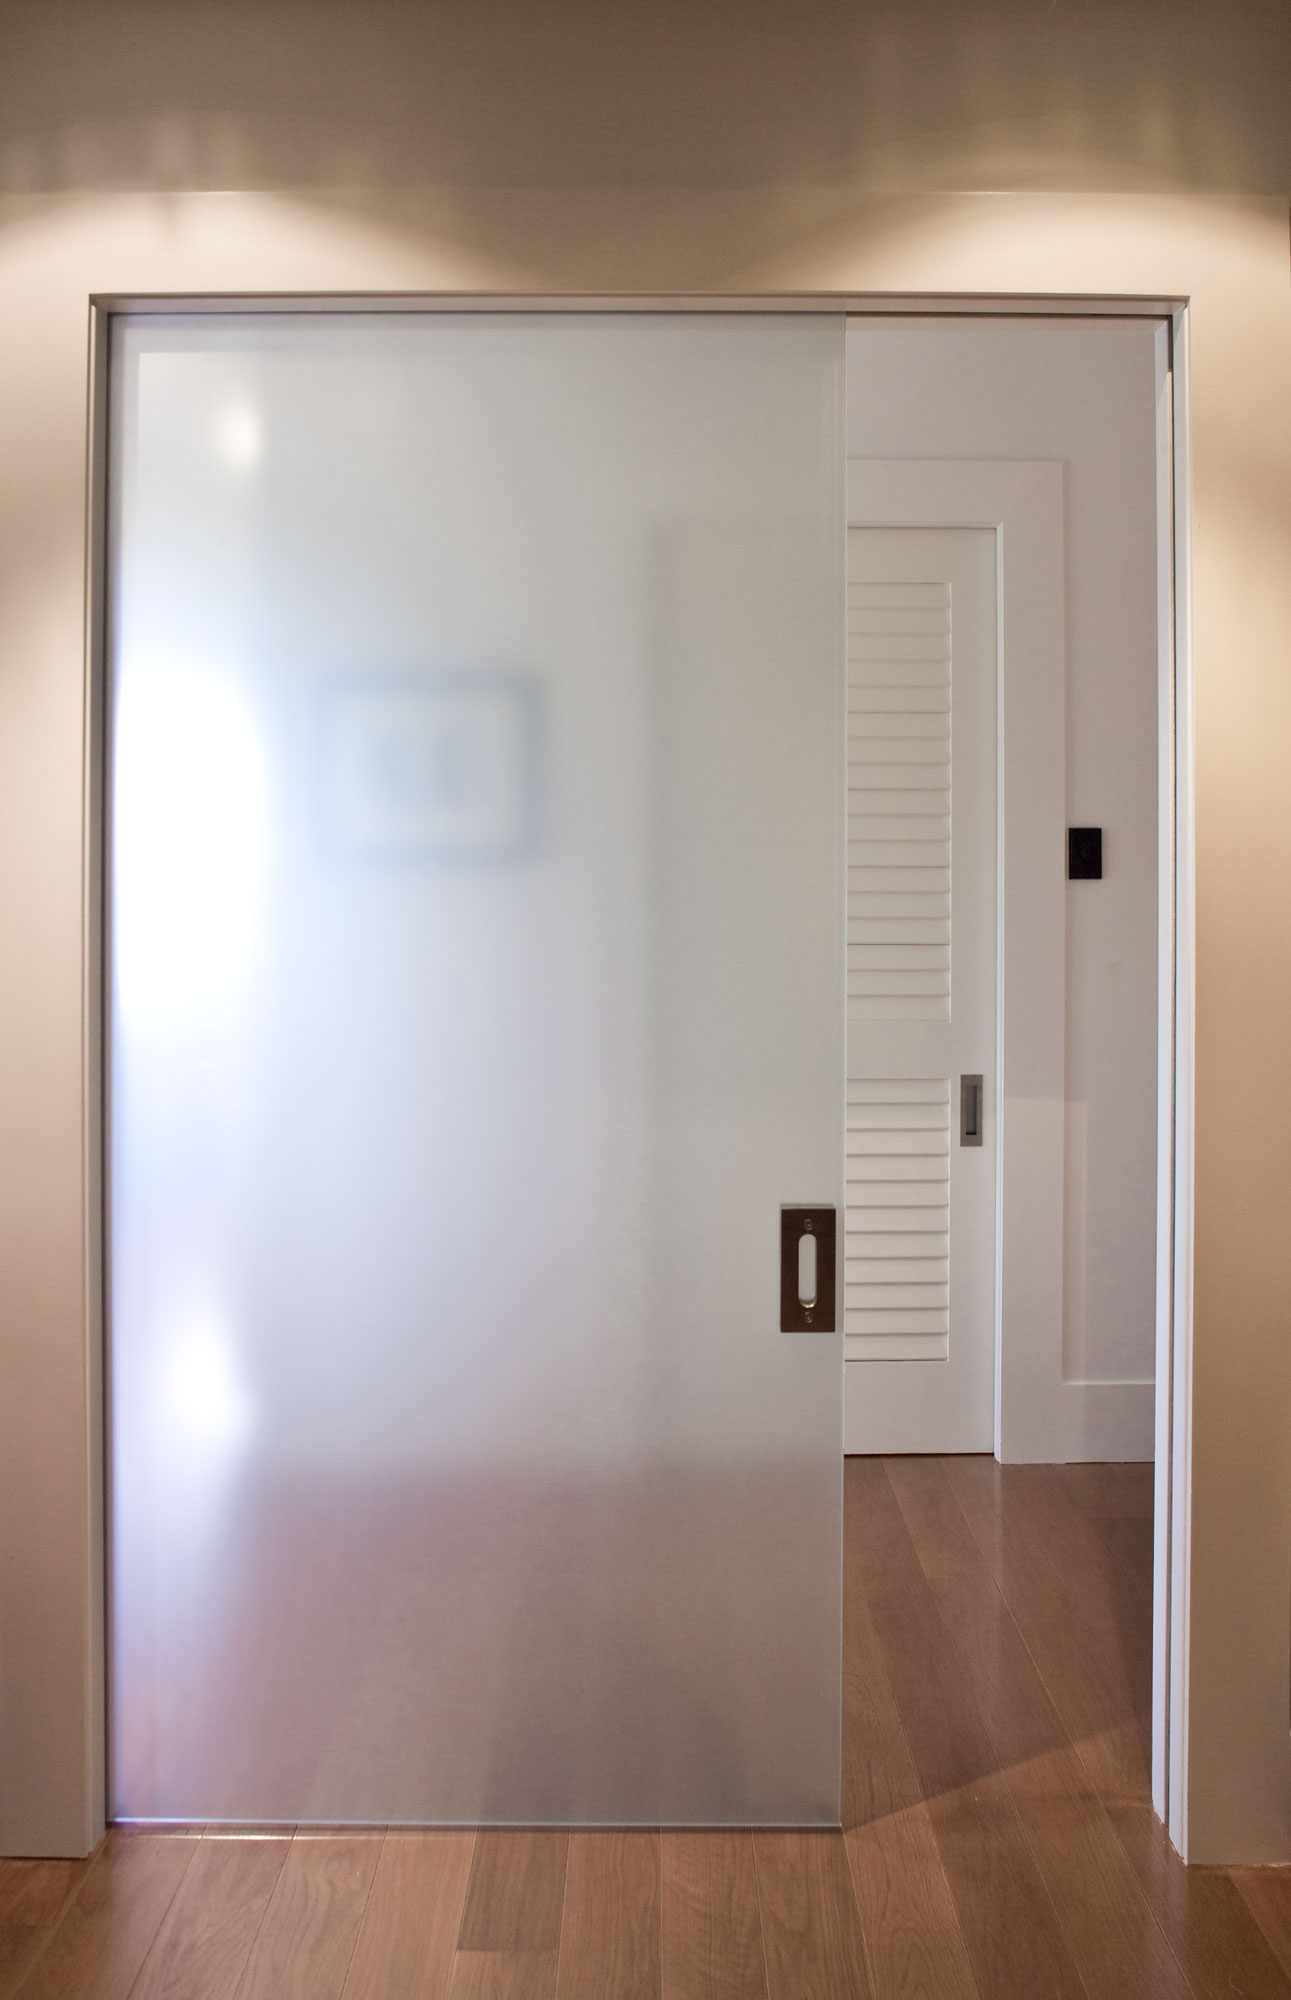 Frameless glass cavity slider doors for Frameless glass doors